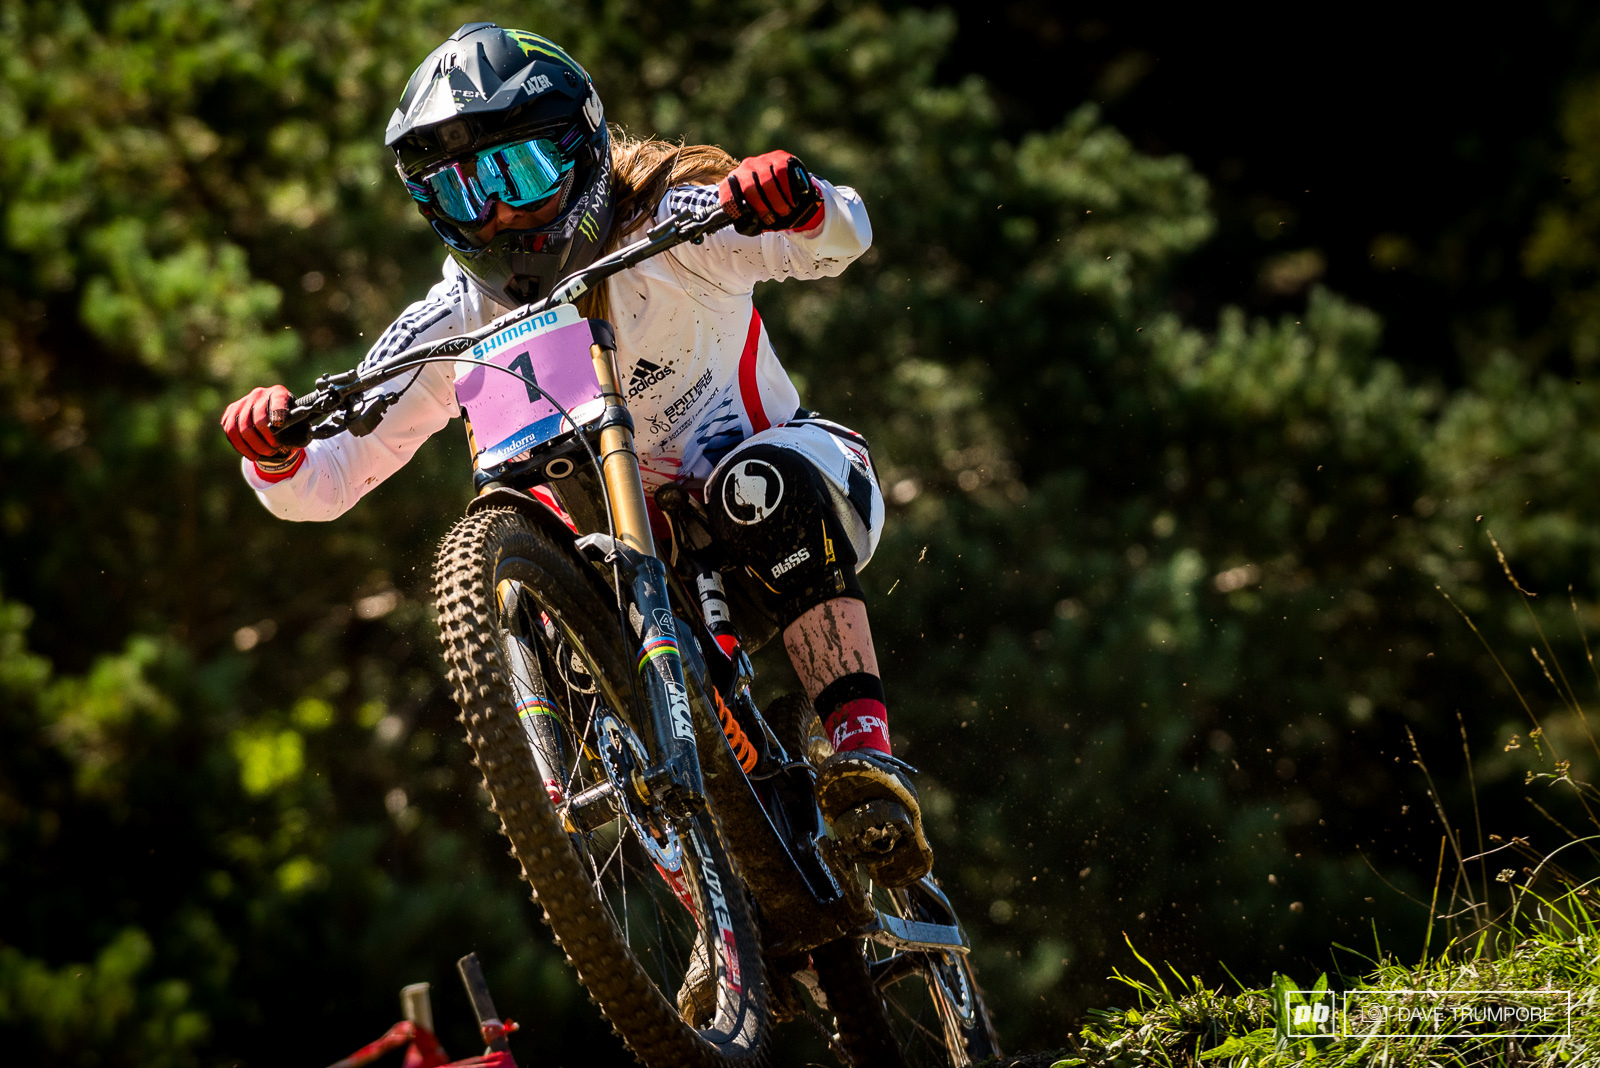 Defending World Champ Manon Carpenter fought hard but won t be leaving Andorra with the 1 plate.